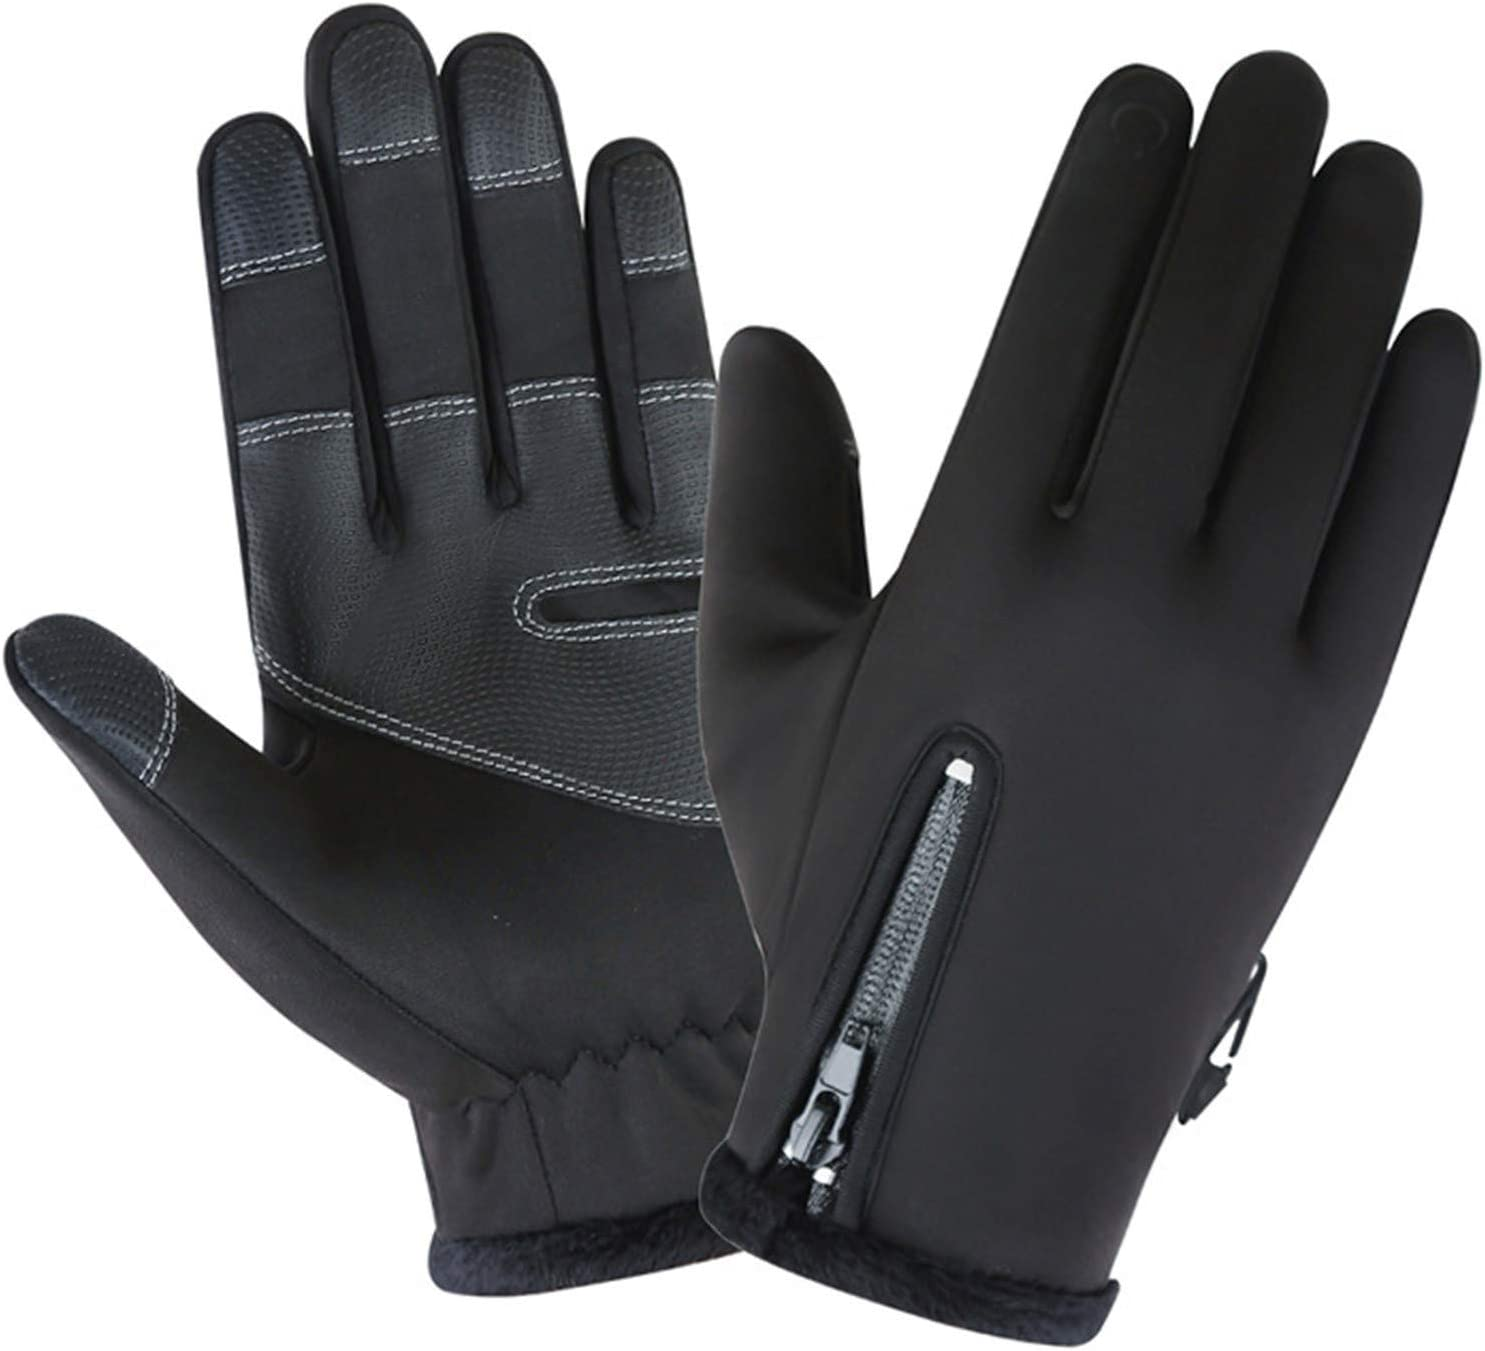 SSDXY Unisex Sports Zipper Winter Warm Gloves Thin Lightweight Full Palm Protection for Outside Sports Driving Cycling